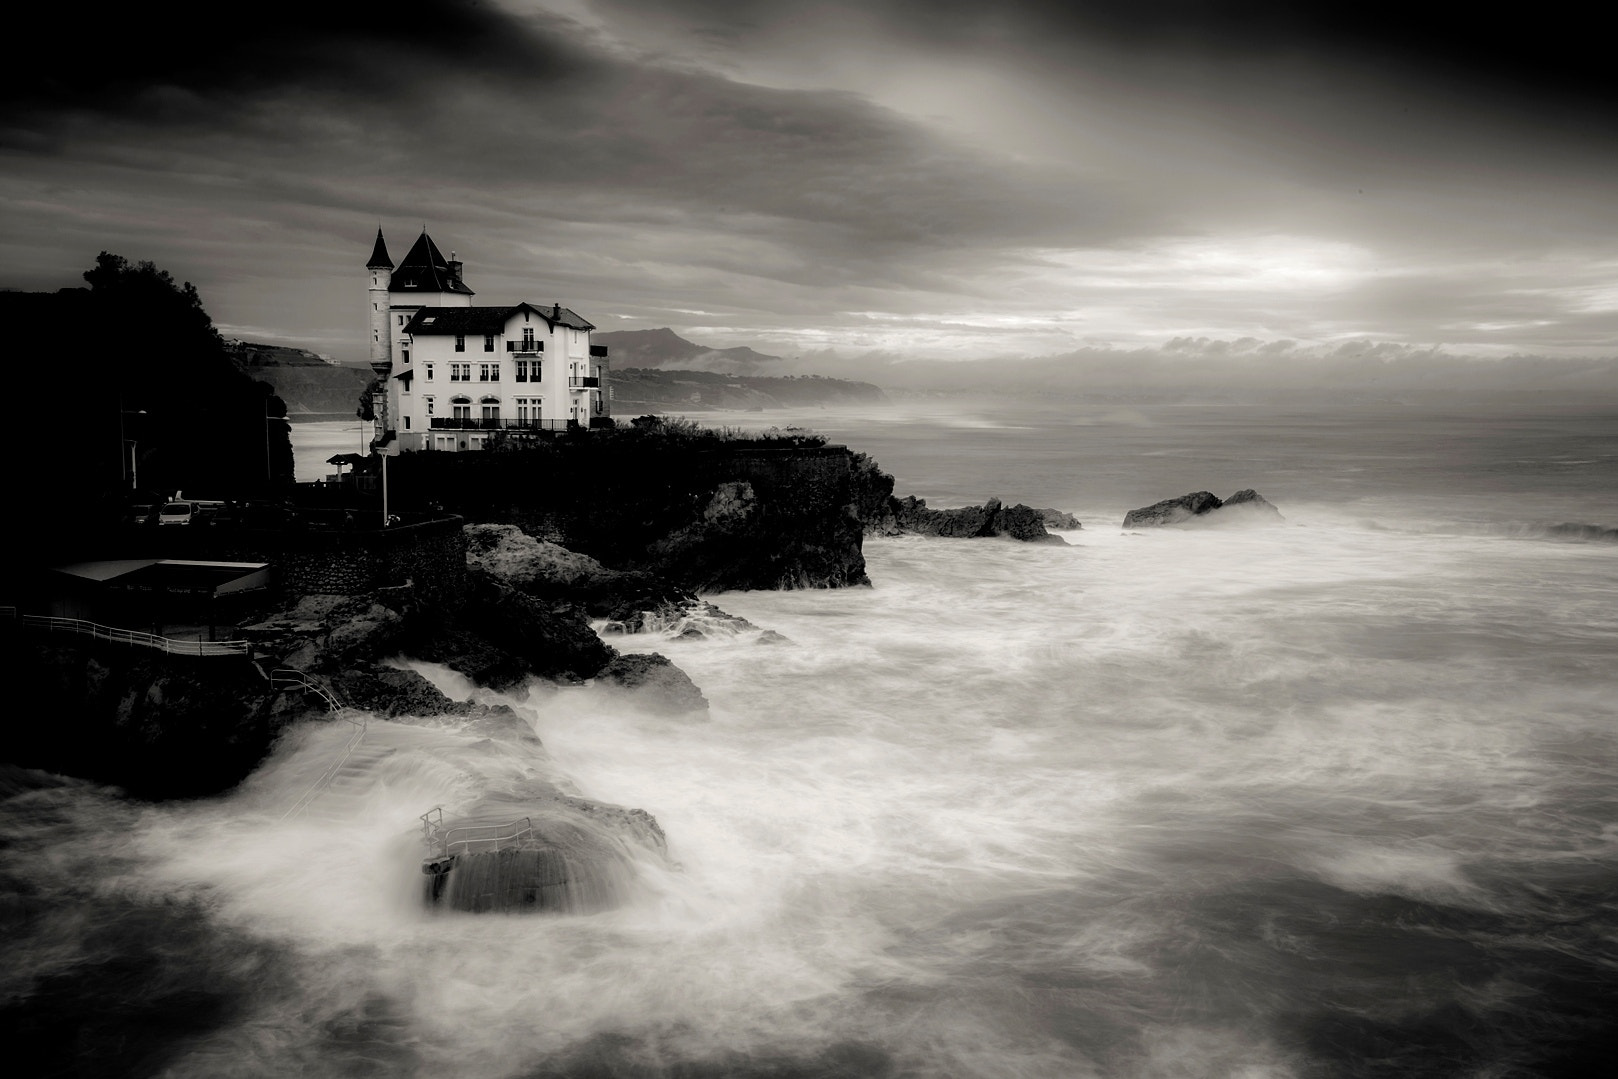 Photograph Biarritz by Patrick Pichard on 500px